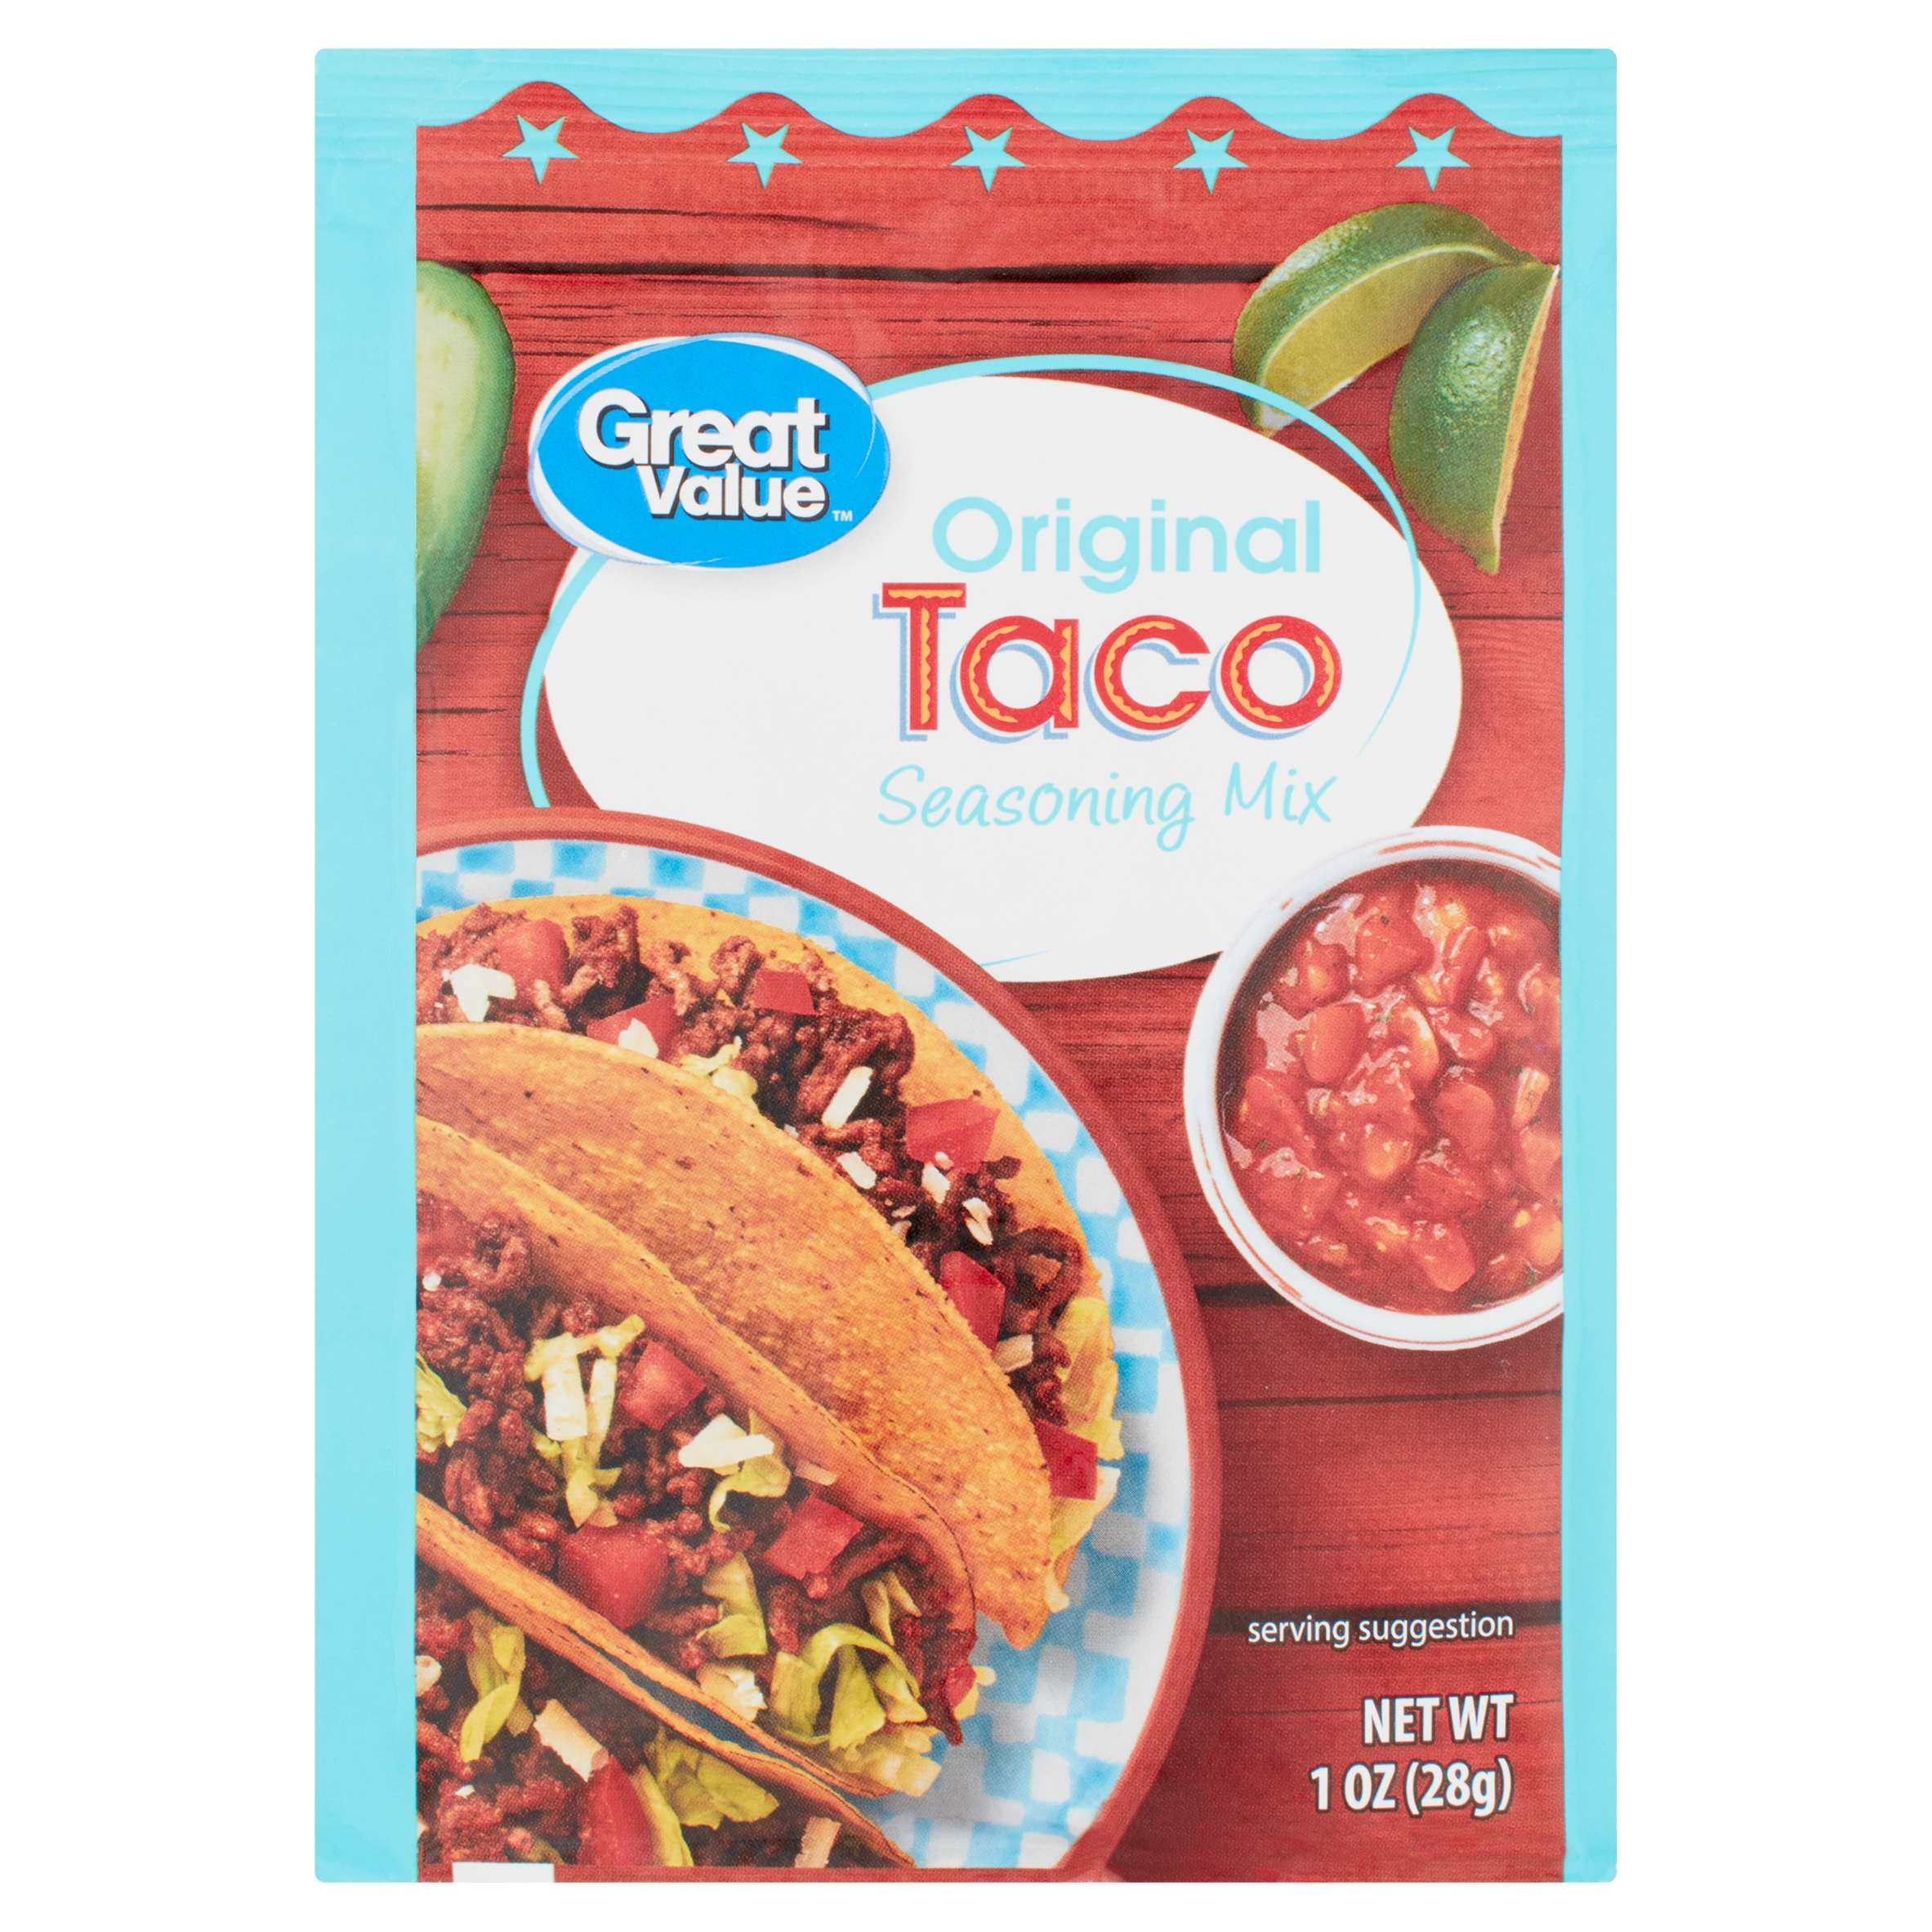 Great Value Original Taco Seasoning Mix 1 Oz Walmart Com Walmart Com